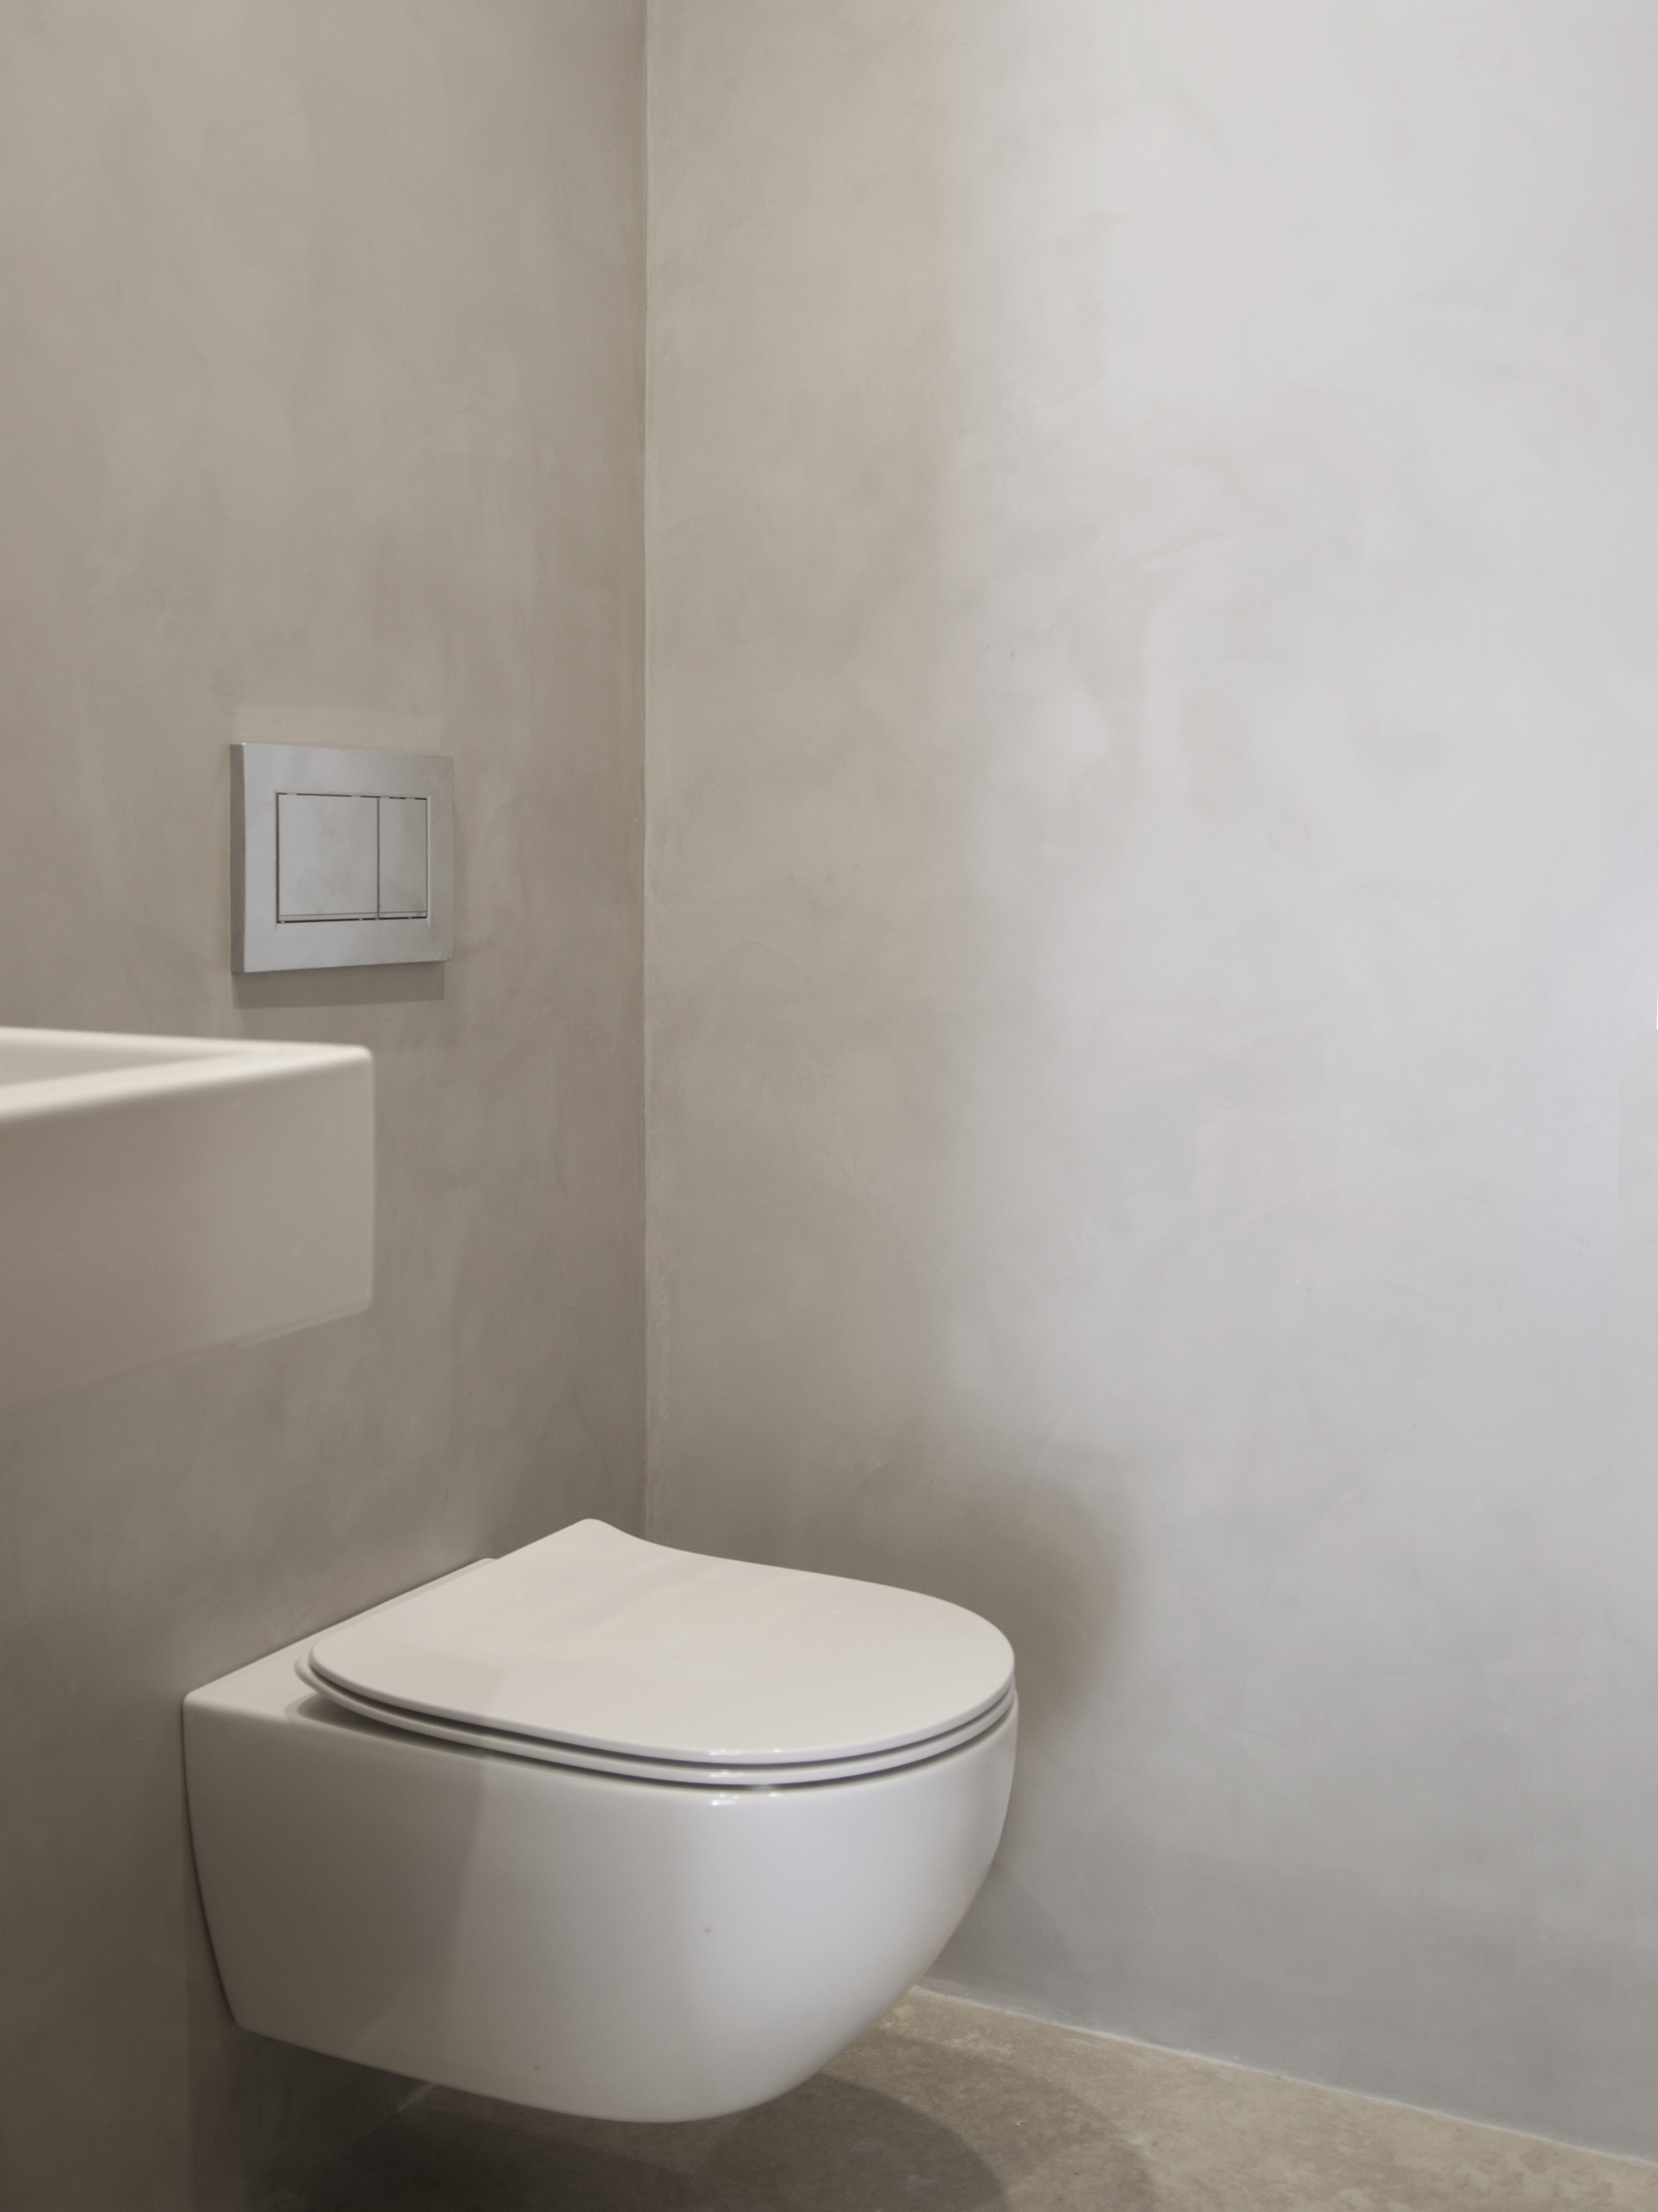 AS_INT_M_toilet groundfloor_3x4_2500px_72DPI.jpg